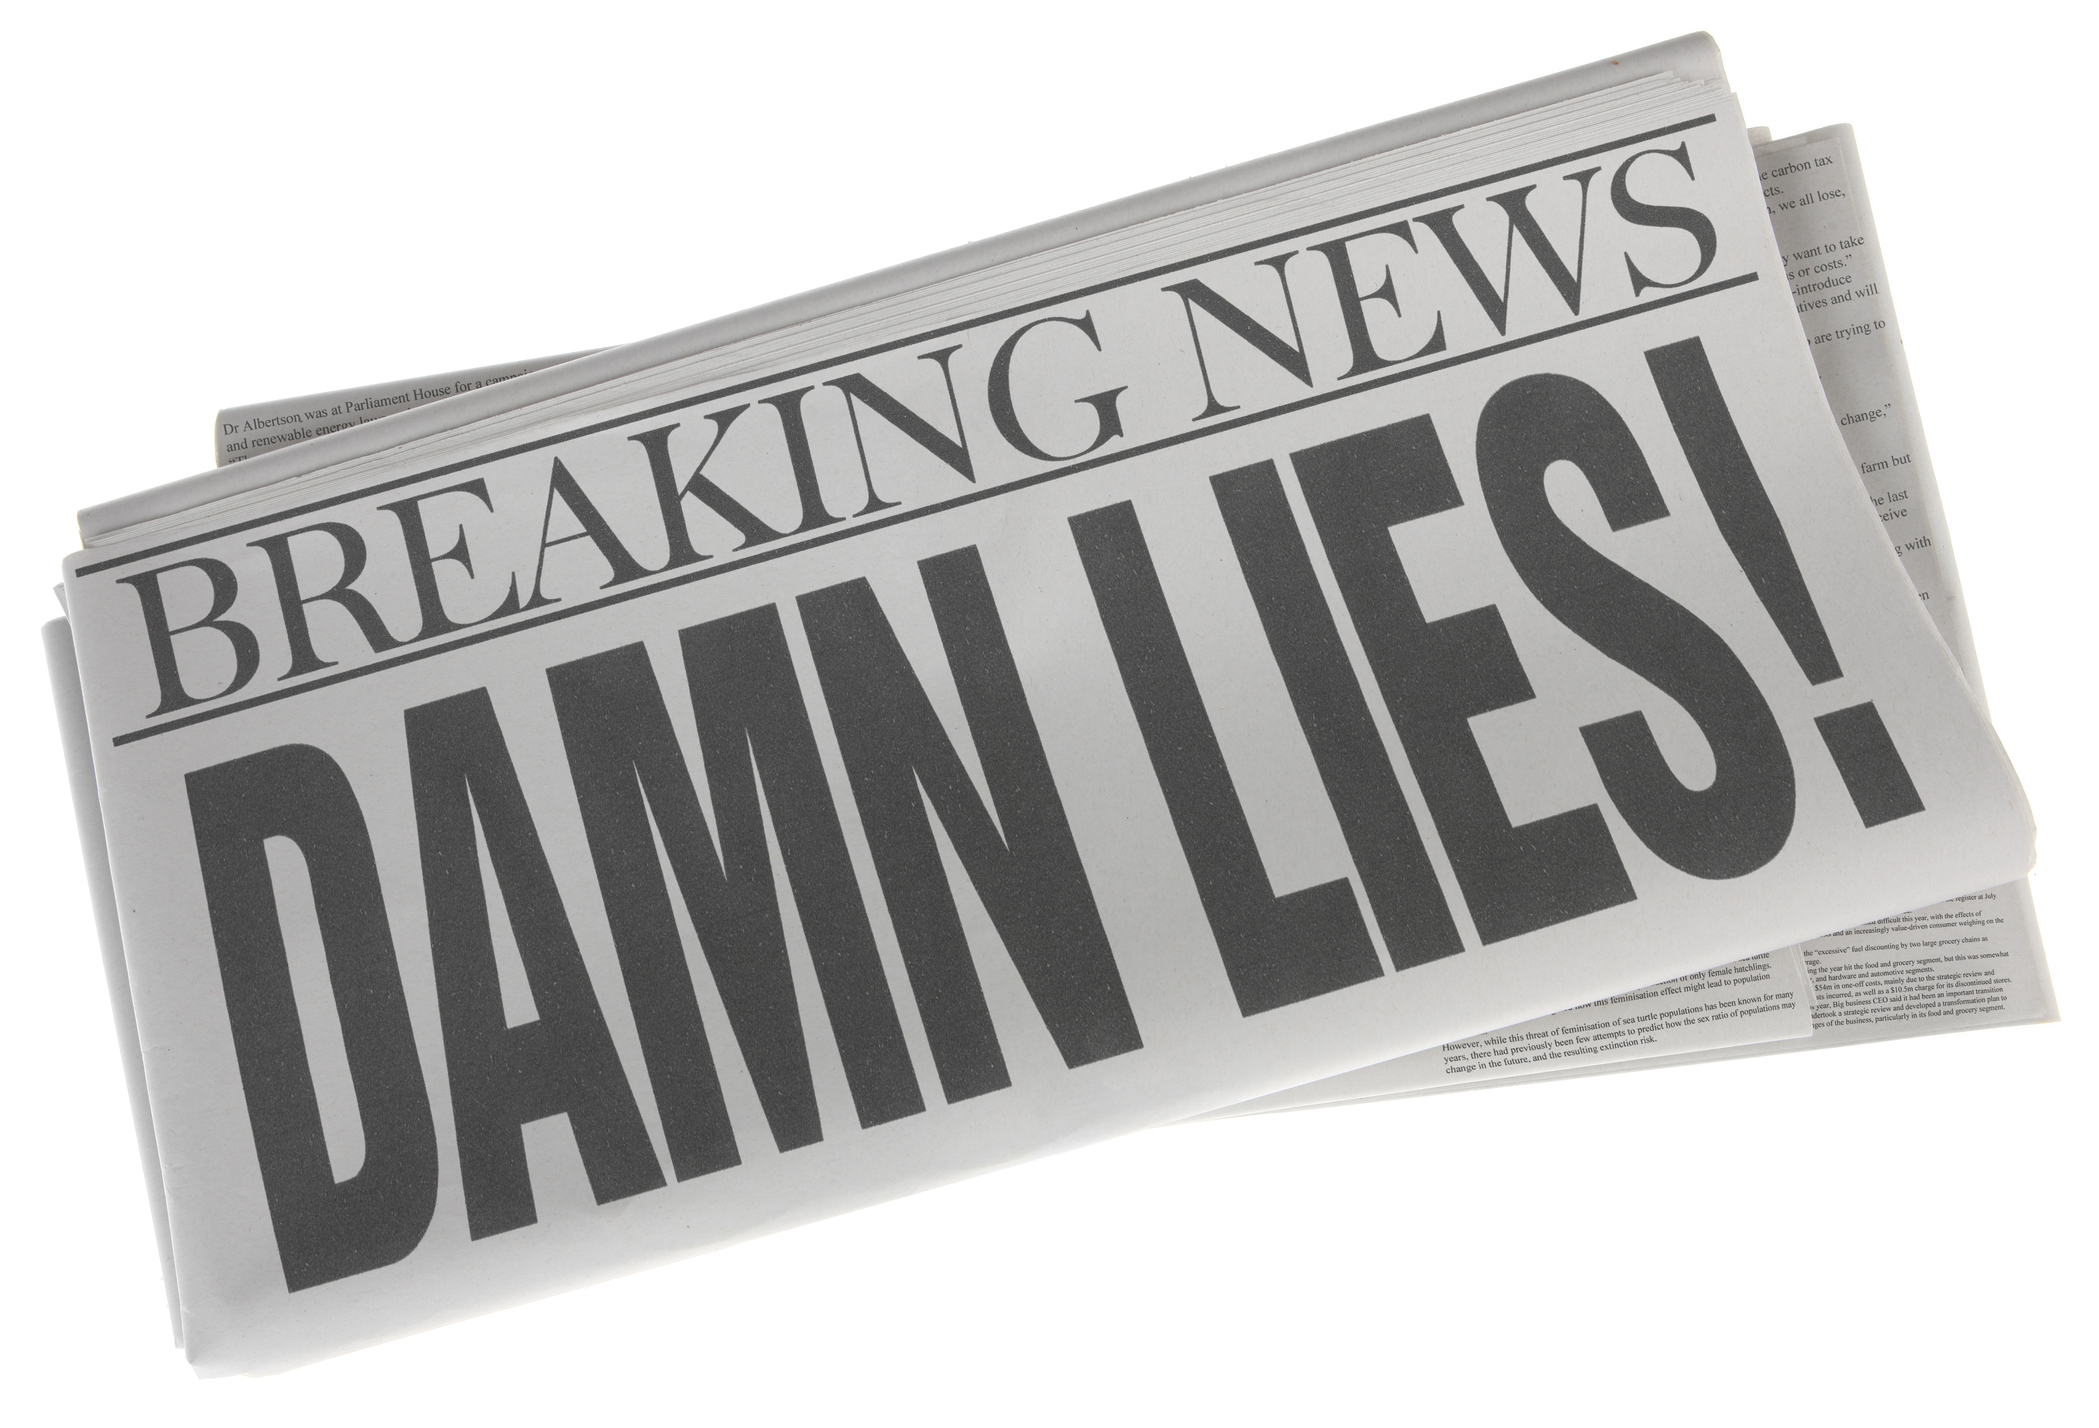 News News: Avoid These Fake News Sites At All Costs